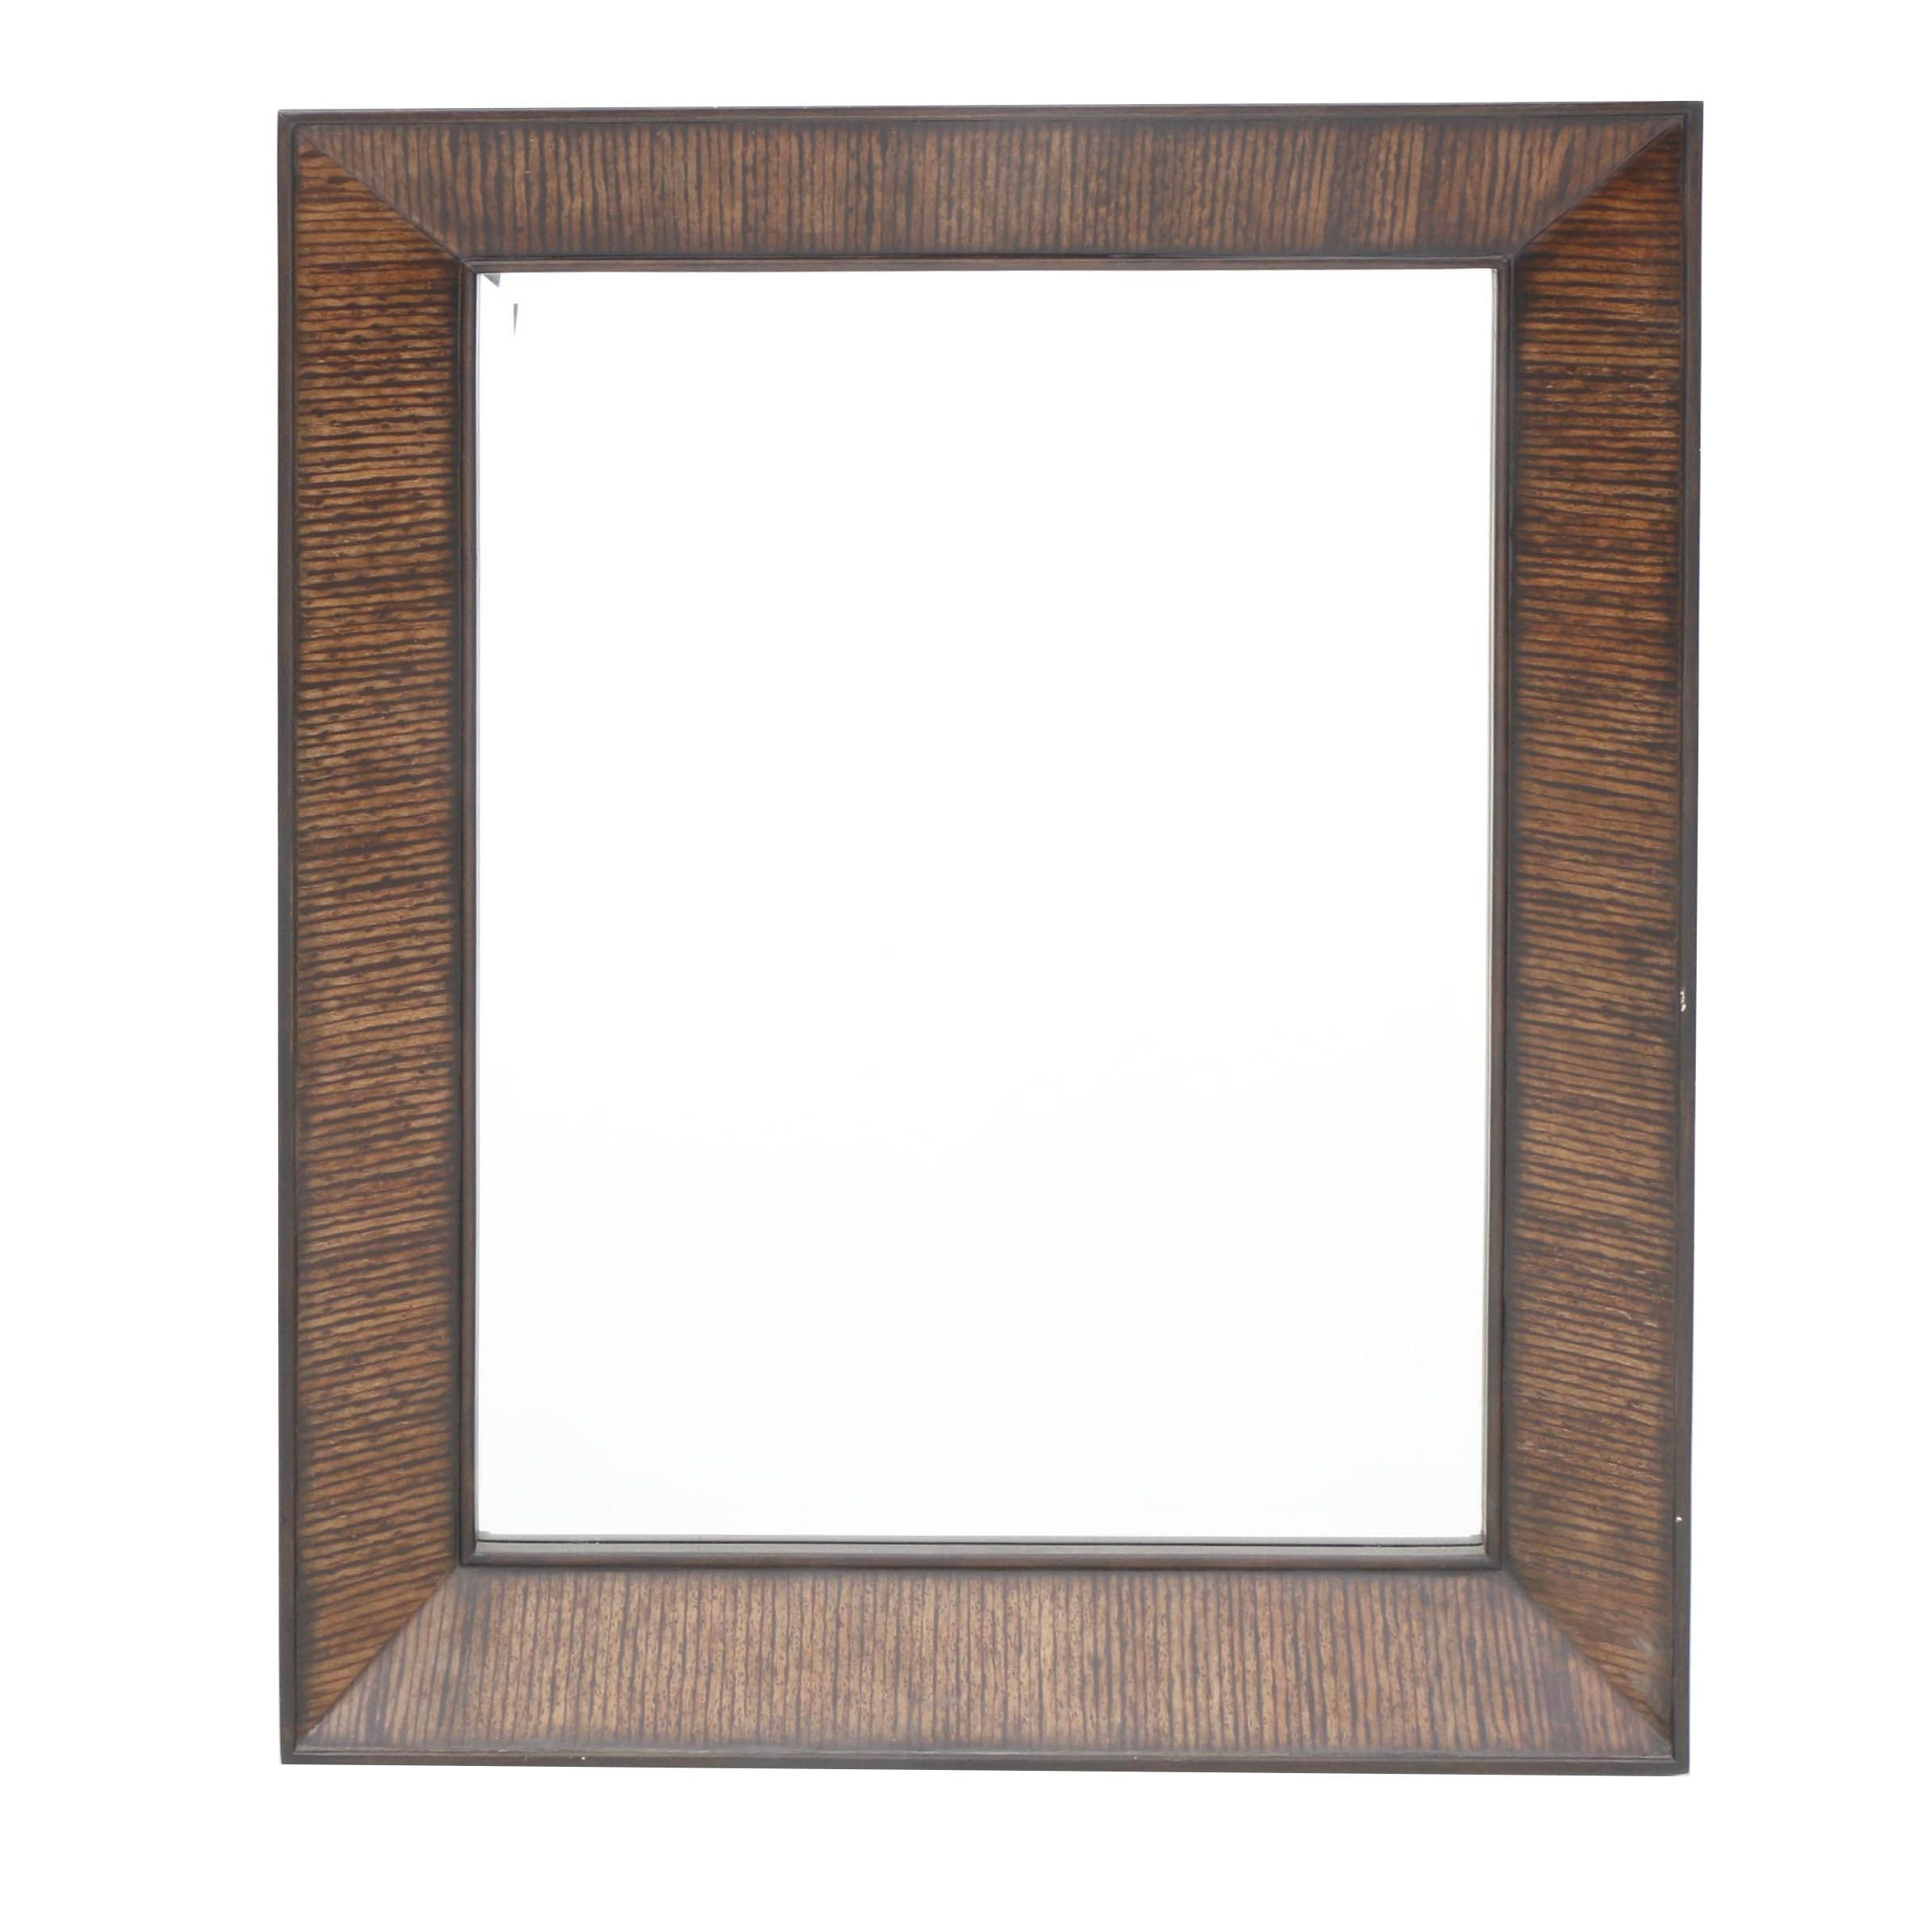 Large Decorative Wall Mirror by Kreiss